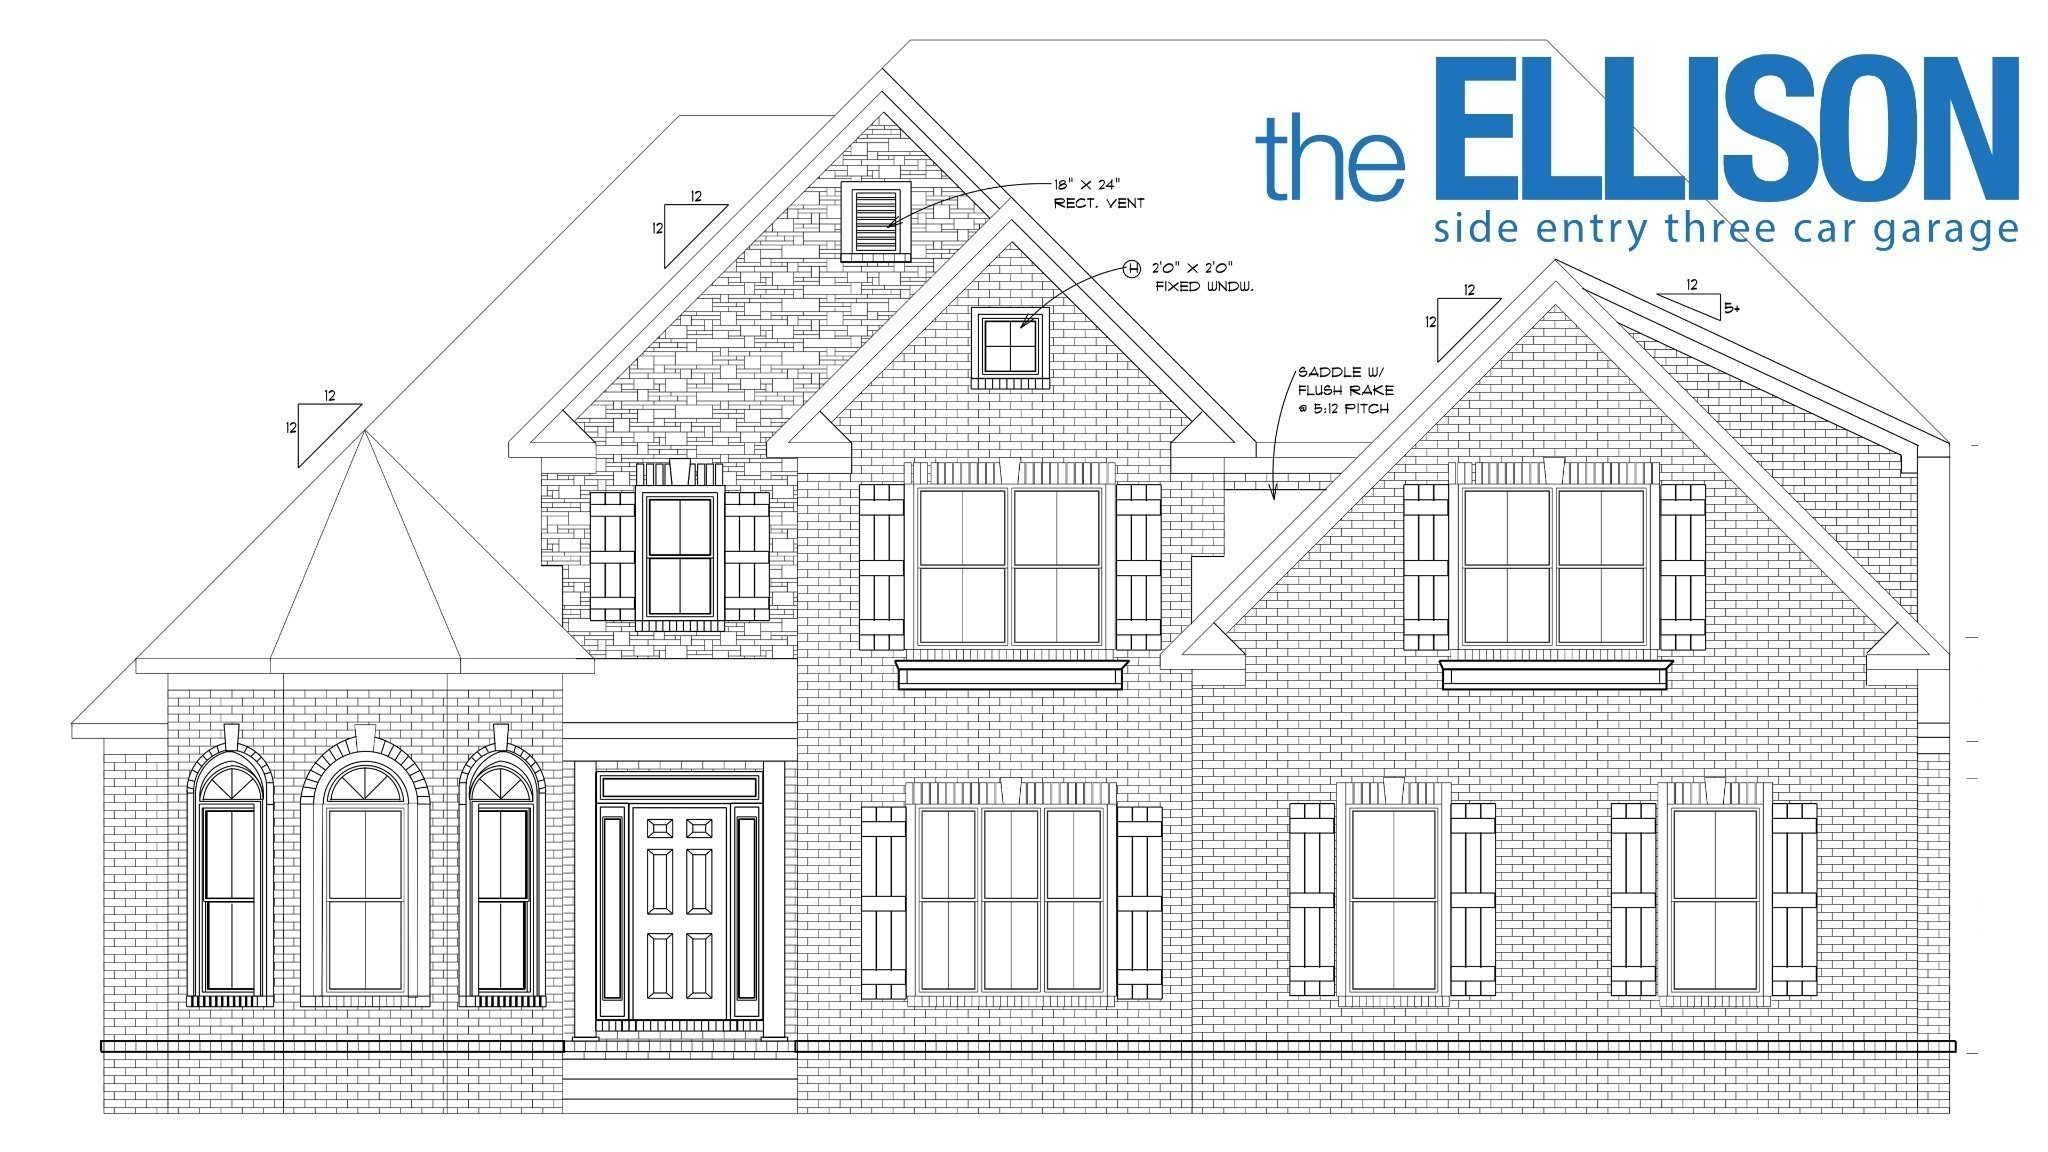 Corner lot & true 3 car garage! This desirable floor plan has 4 beds & 4 baths. Master suite + additional bedroom on main floor. Two more bedrooms up + spacious bonus room. Features include real sand and finished hardwood floors, granite counter tops, gourmet kitchen w/ birch cabinetry & soft close technology + double ovens. Tiled master shower, over sized closets, an abundance of storage space & the list goes on! John Maher Builders was recently voted #1 Best Builder in Williamson Co for 2018!